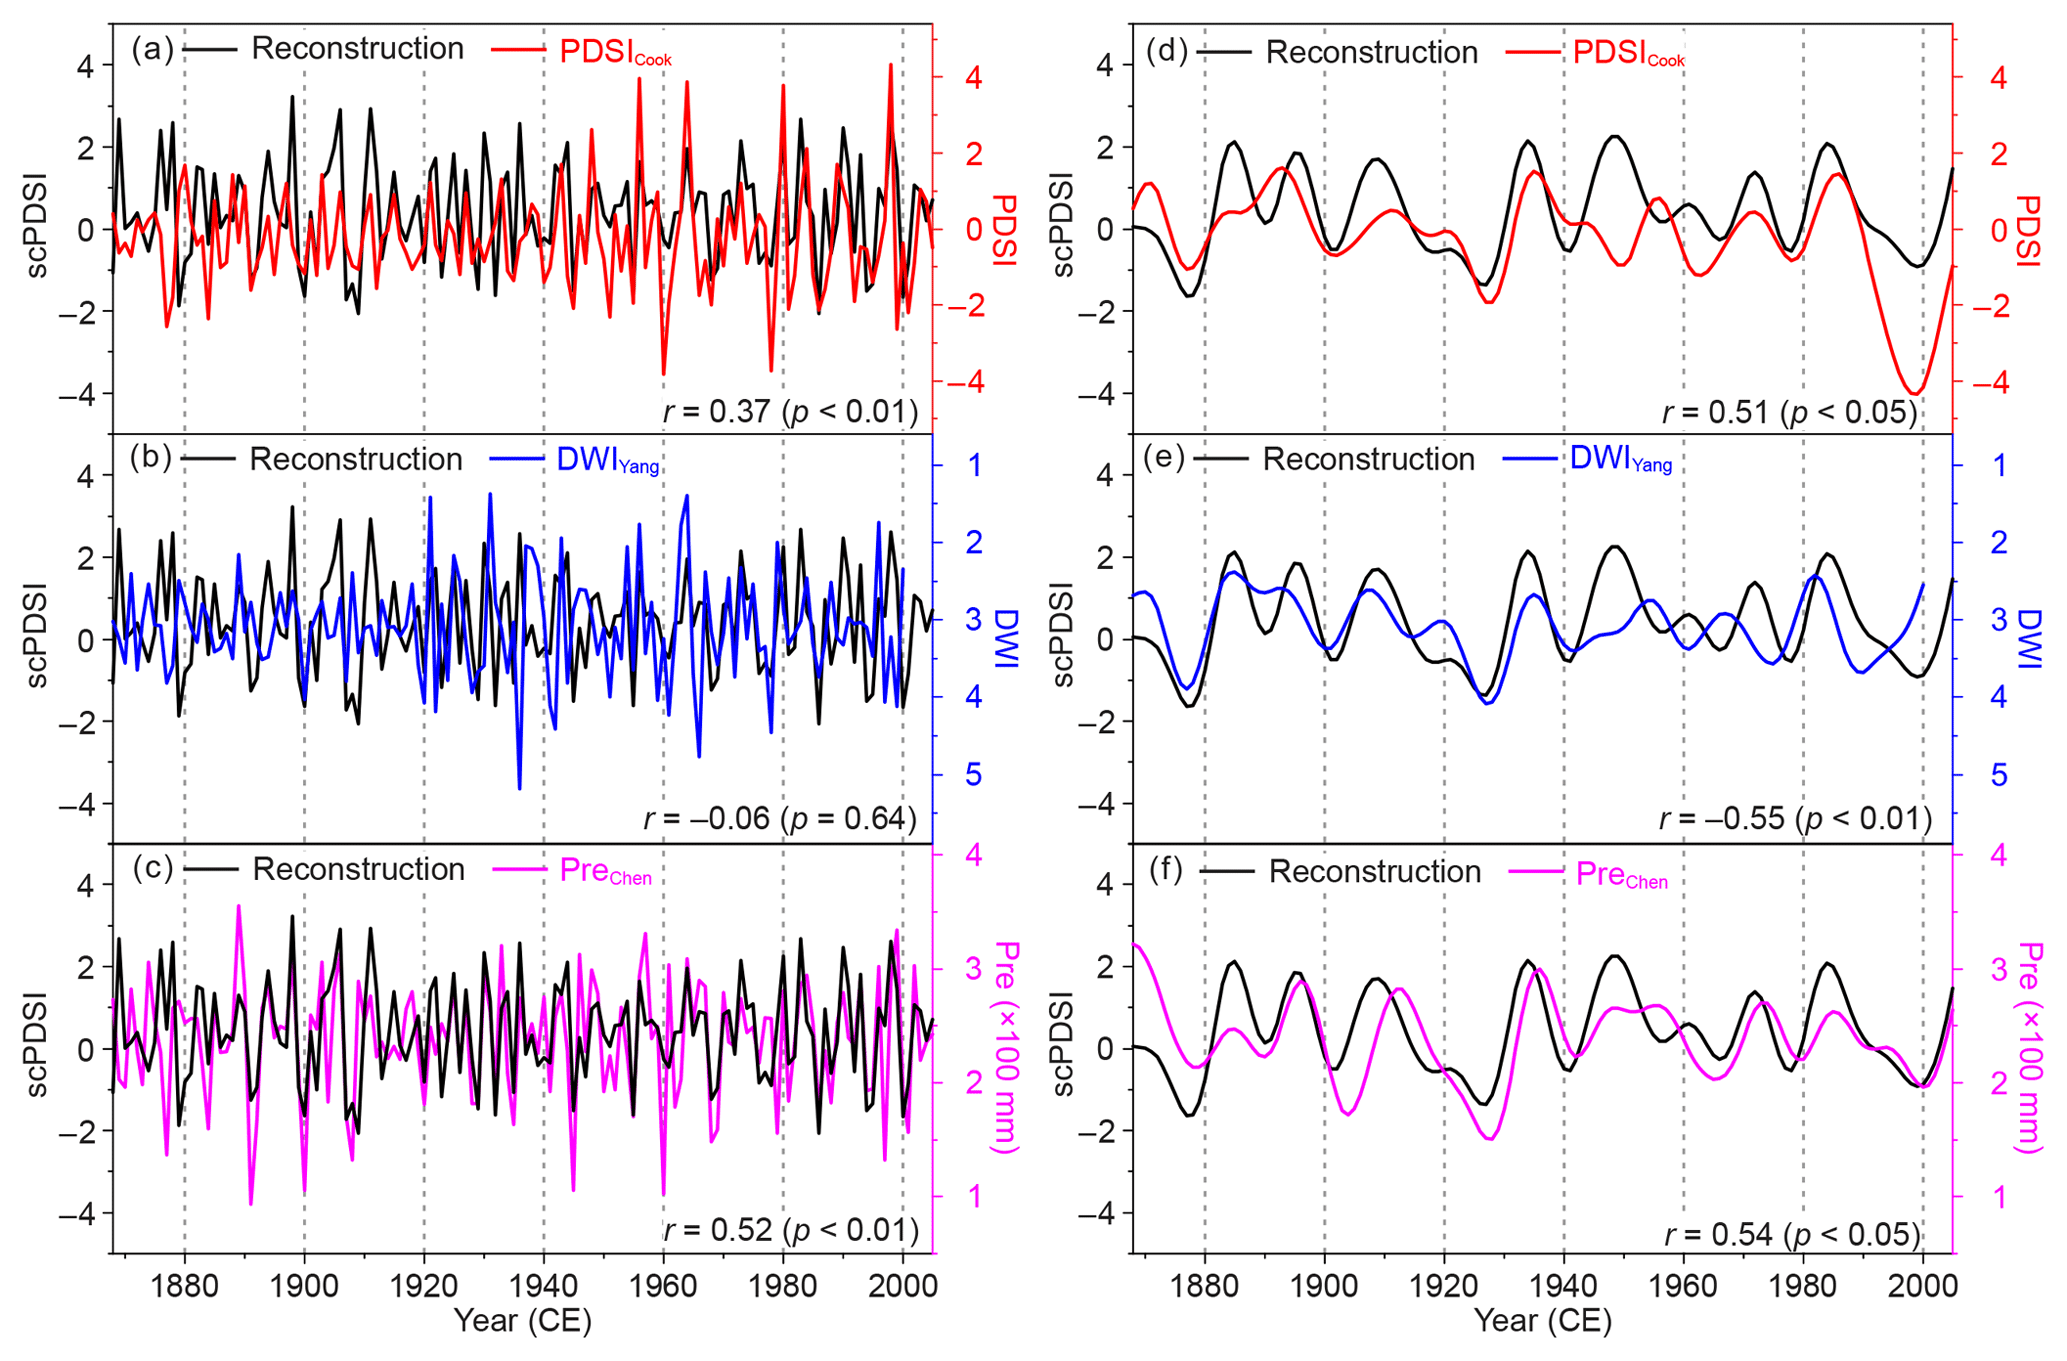 CP - Early summer hydroclimatic signals are captured well by